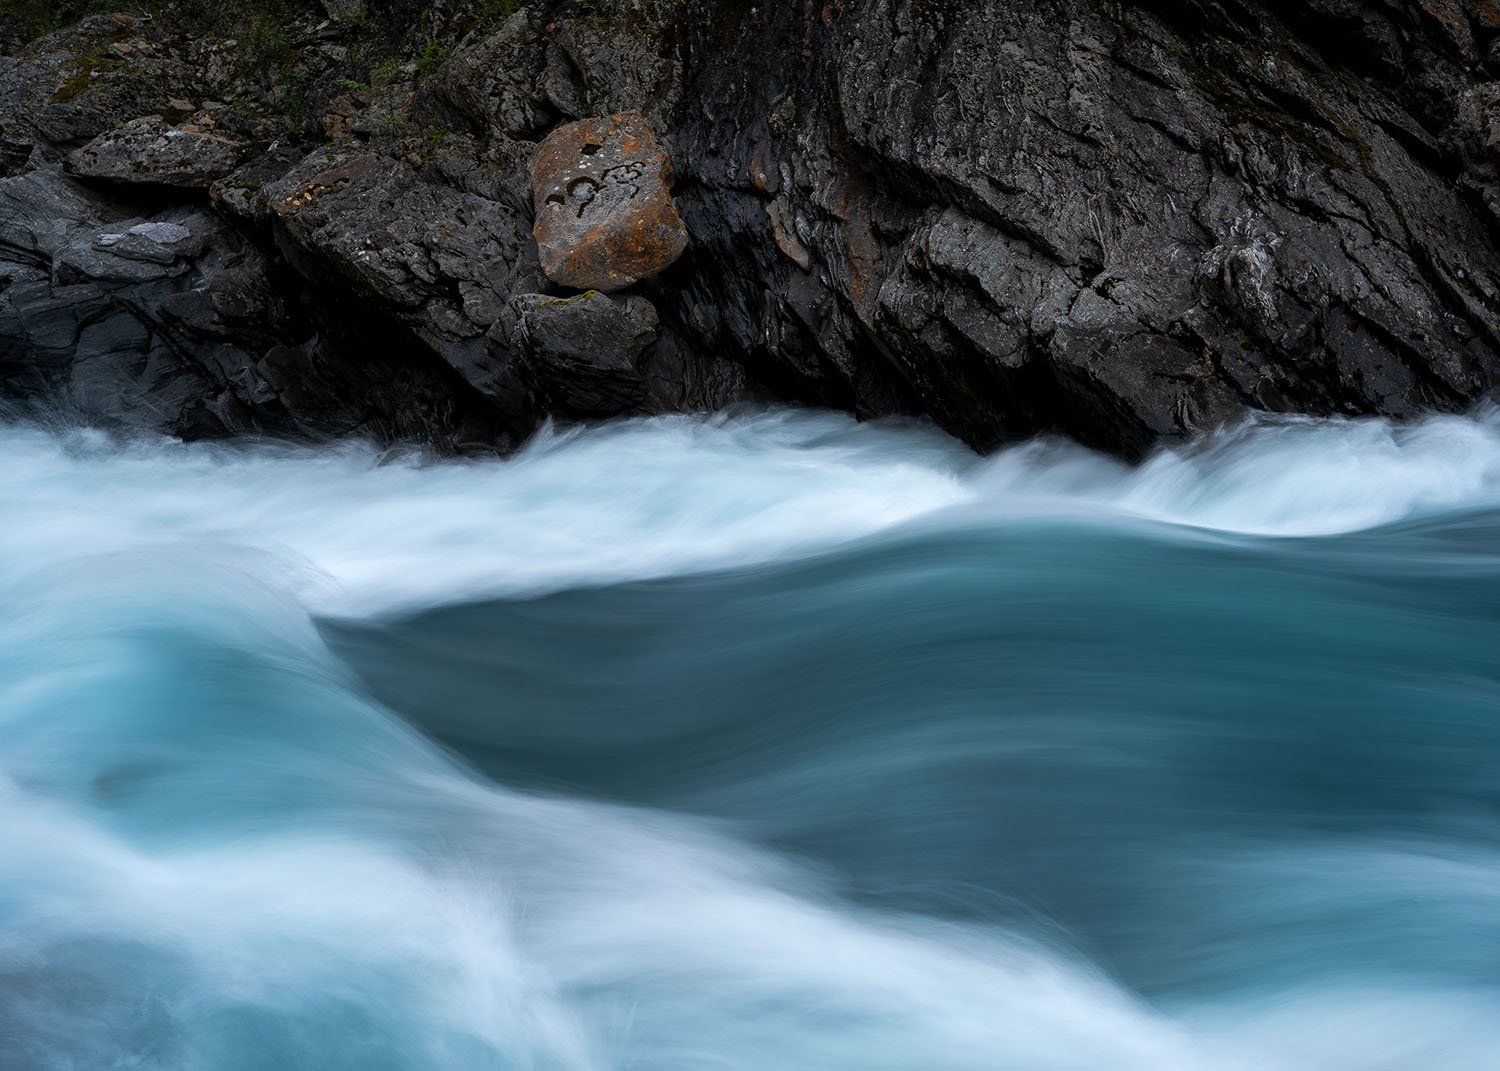 Abstract Telezoom in Landscape Photography